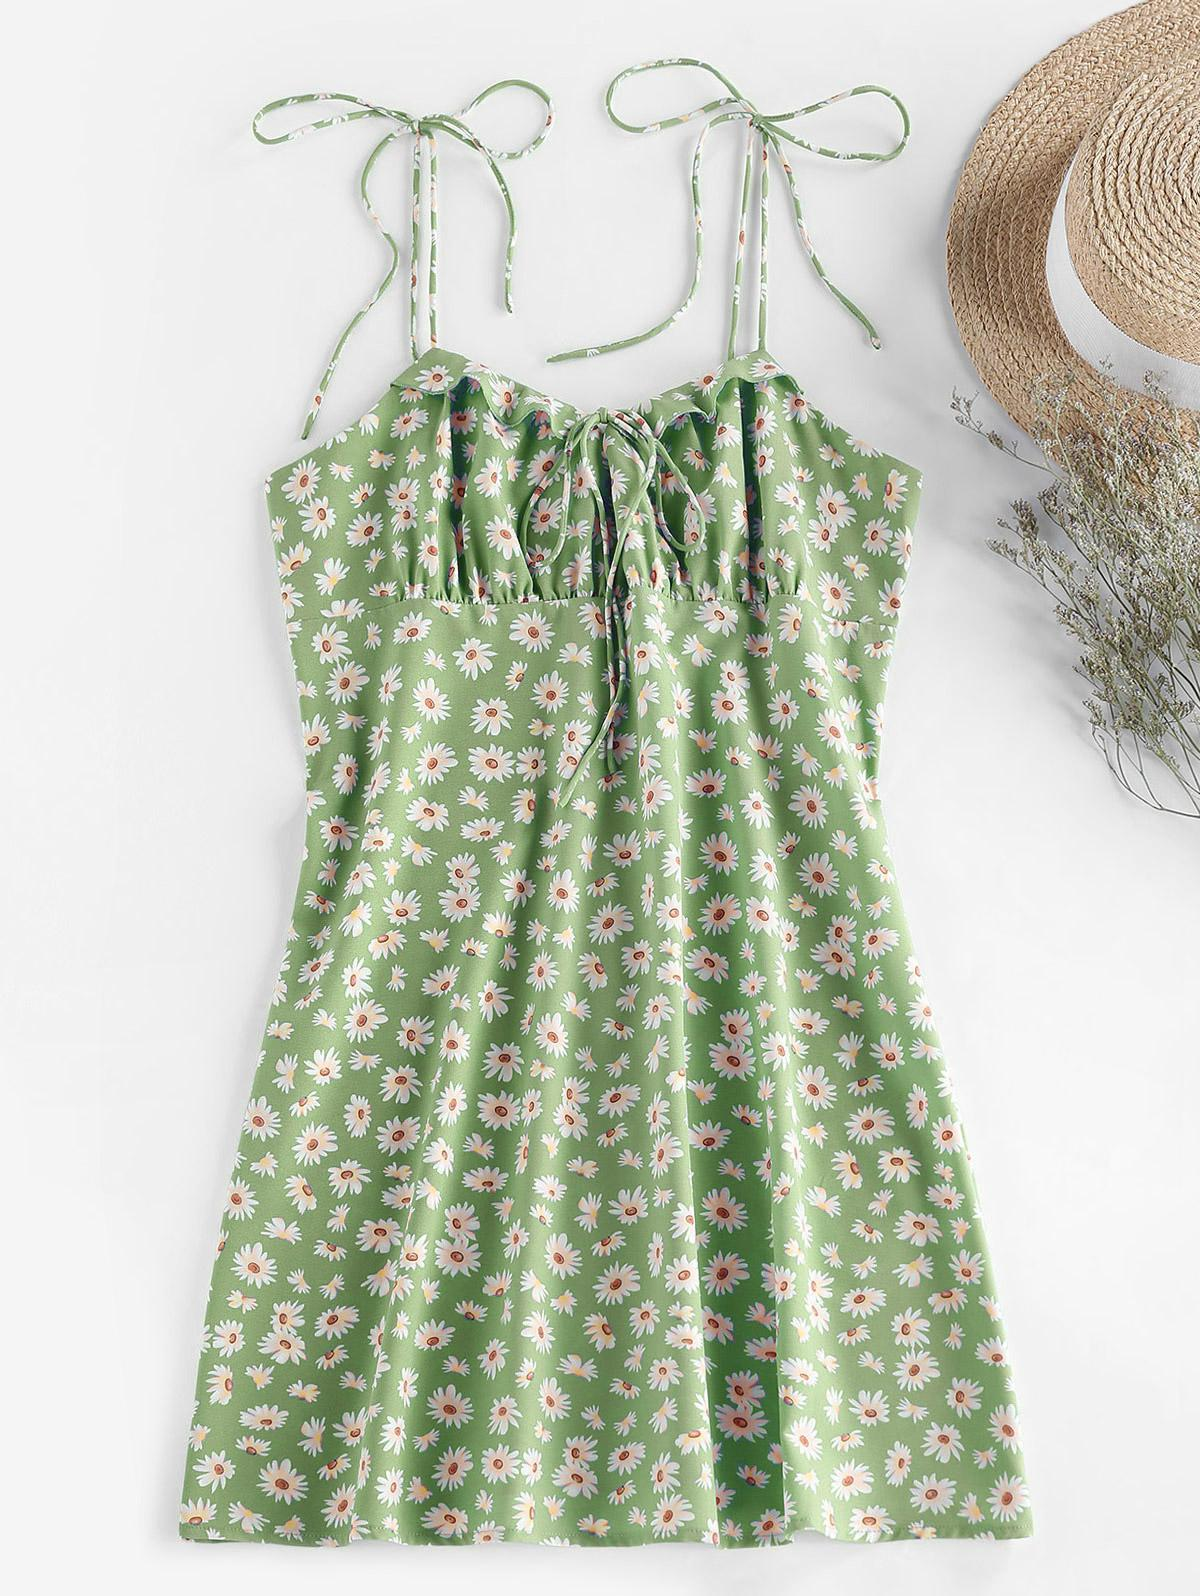 ZAFUL Daisy Print Tie Shoulder Ruffle Mini Dress